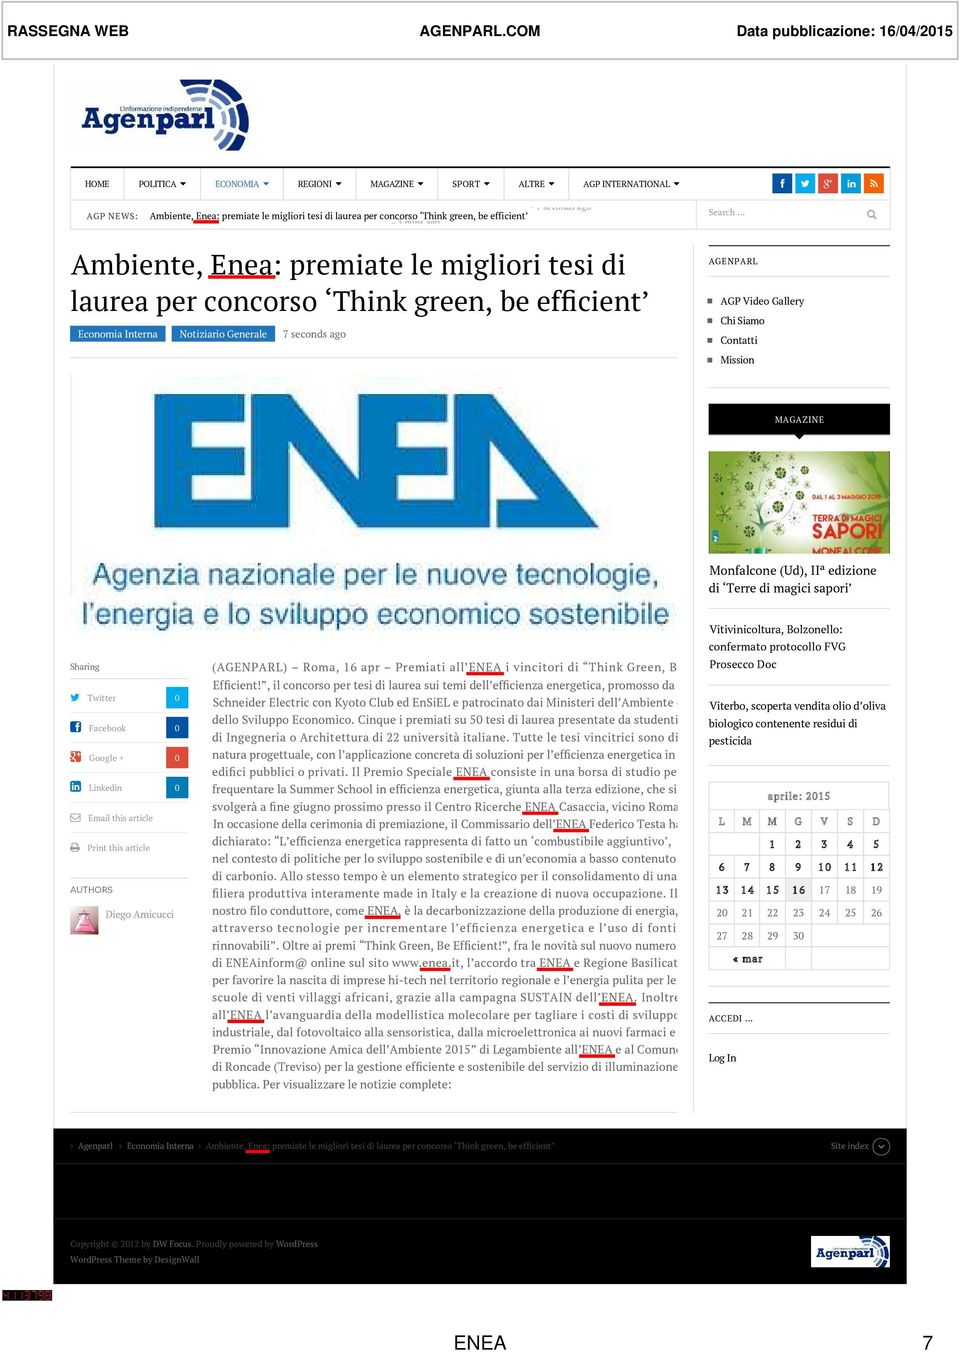 tesi di laurea per concorso Think green, be efficient - 3 mins ago Search Ambiente, Enea: premiate le migliori tesi di laurea per concorso Think green, be efficient Economia Interna Notiziario